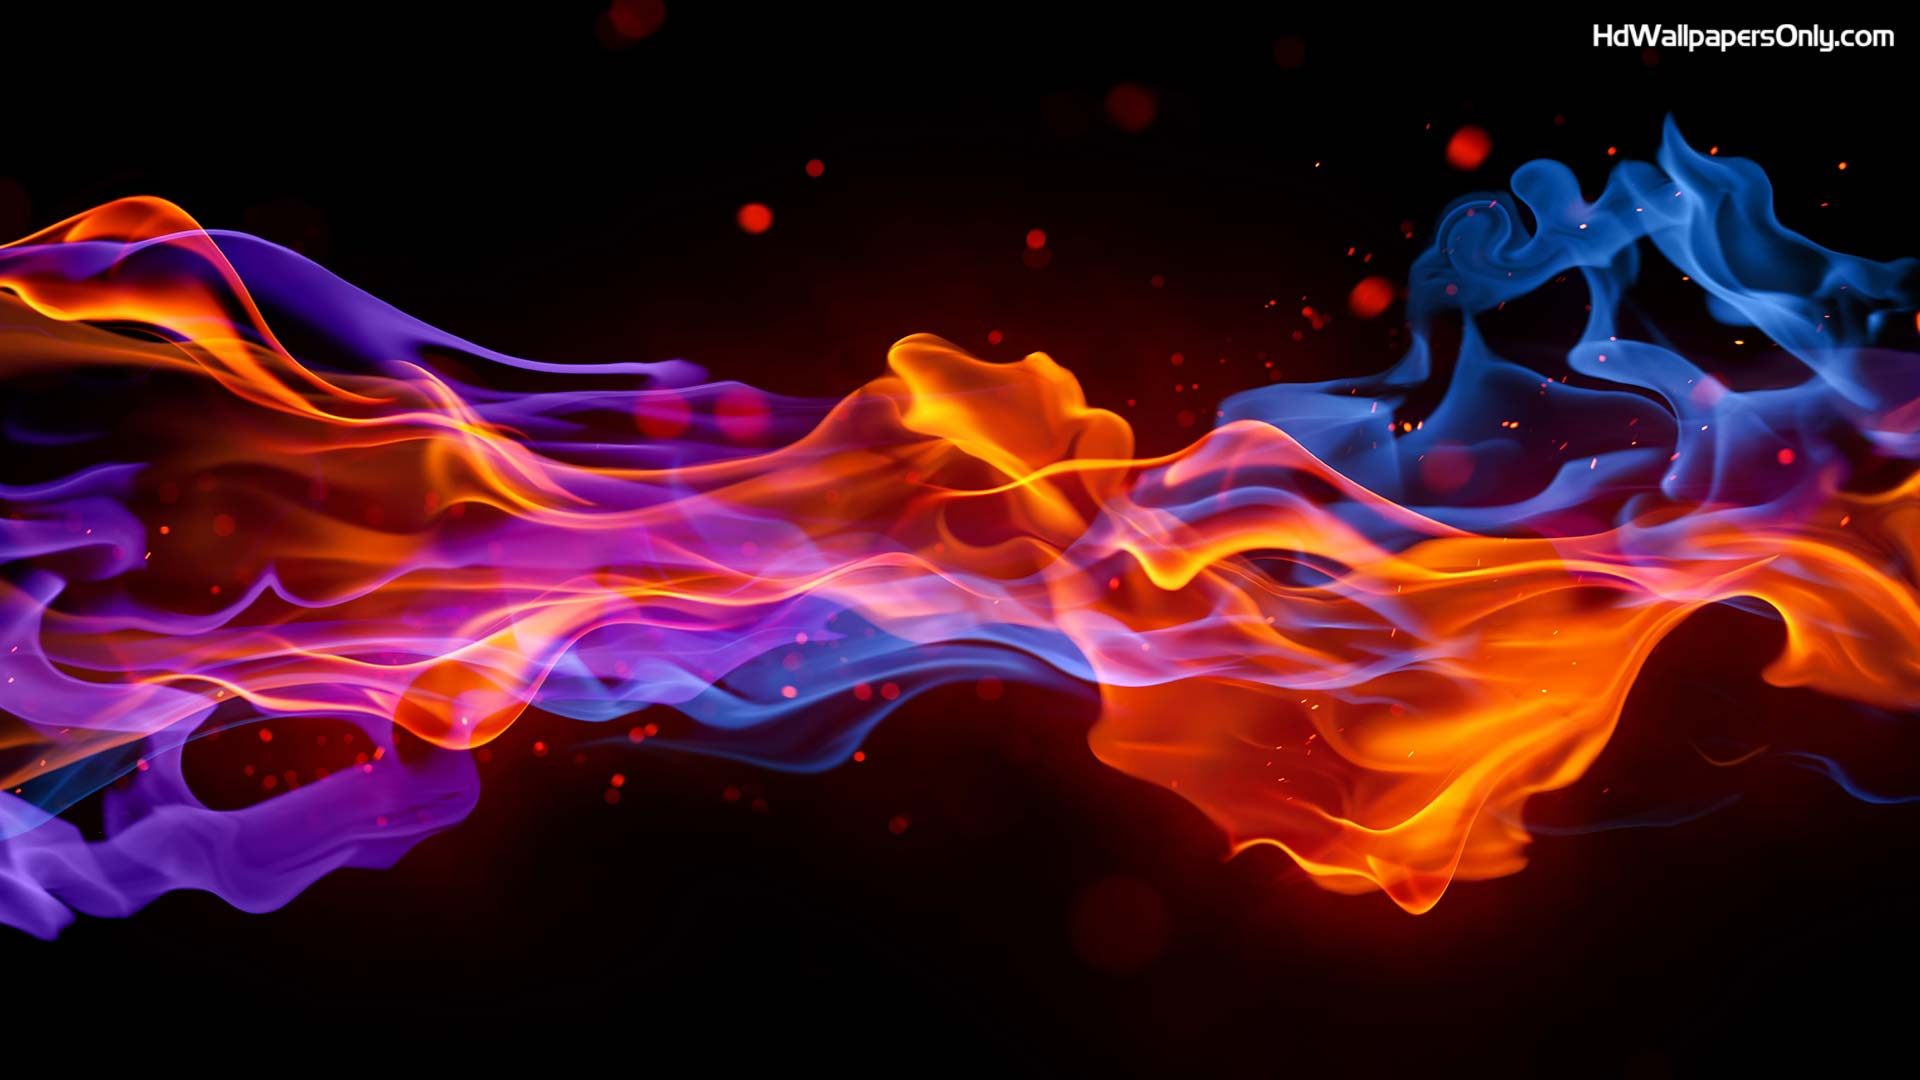 Computer Fire Wallpaper Desktop